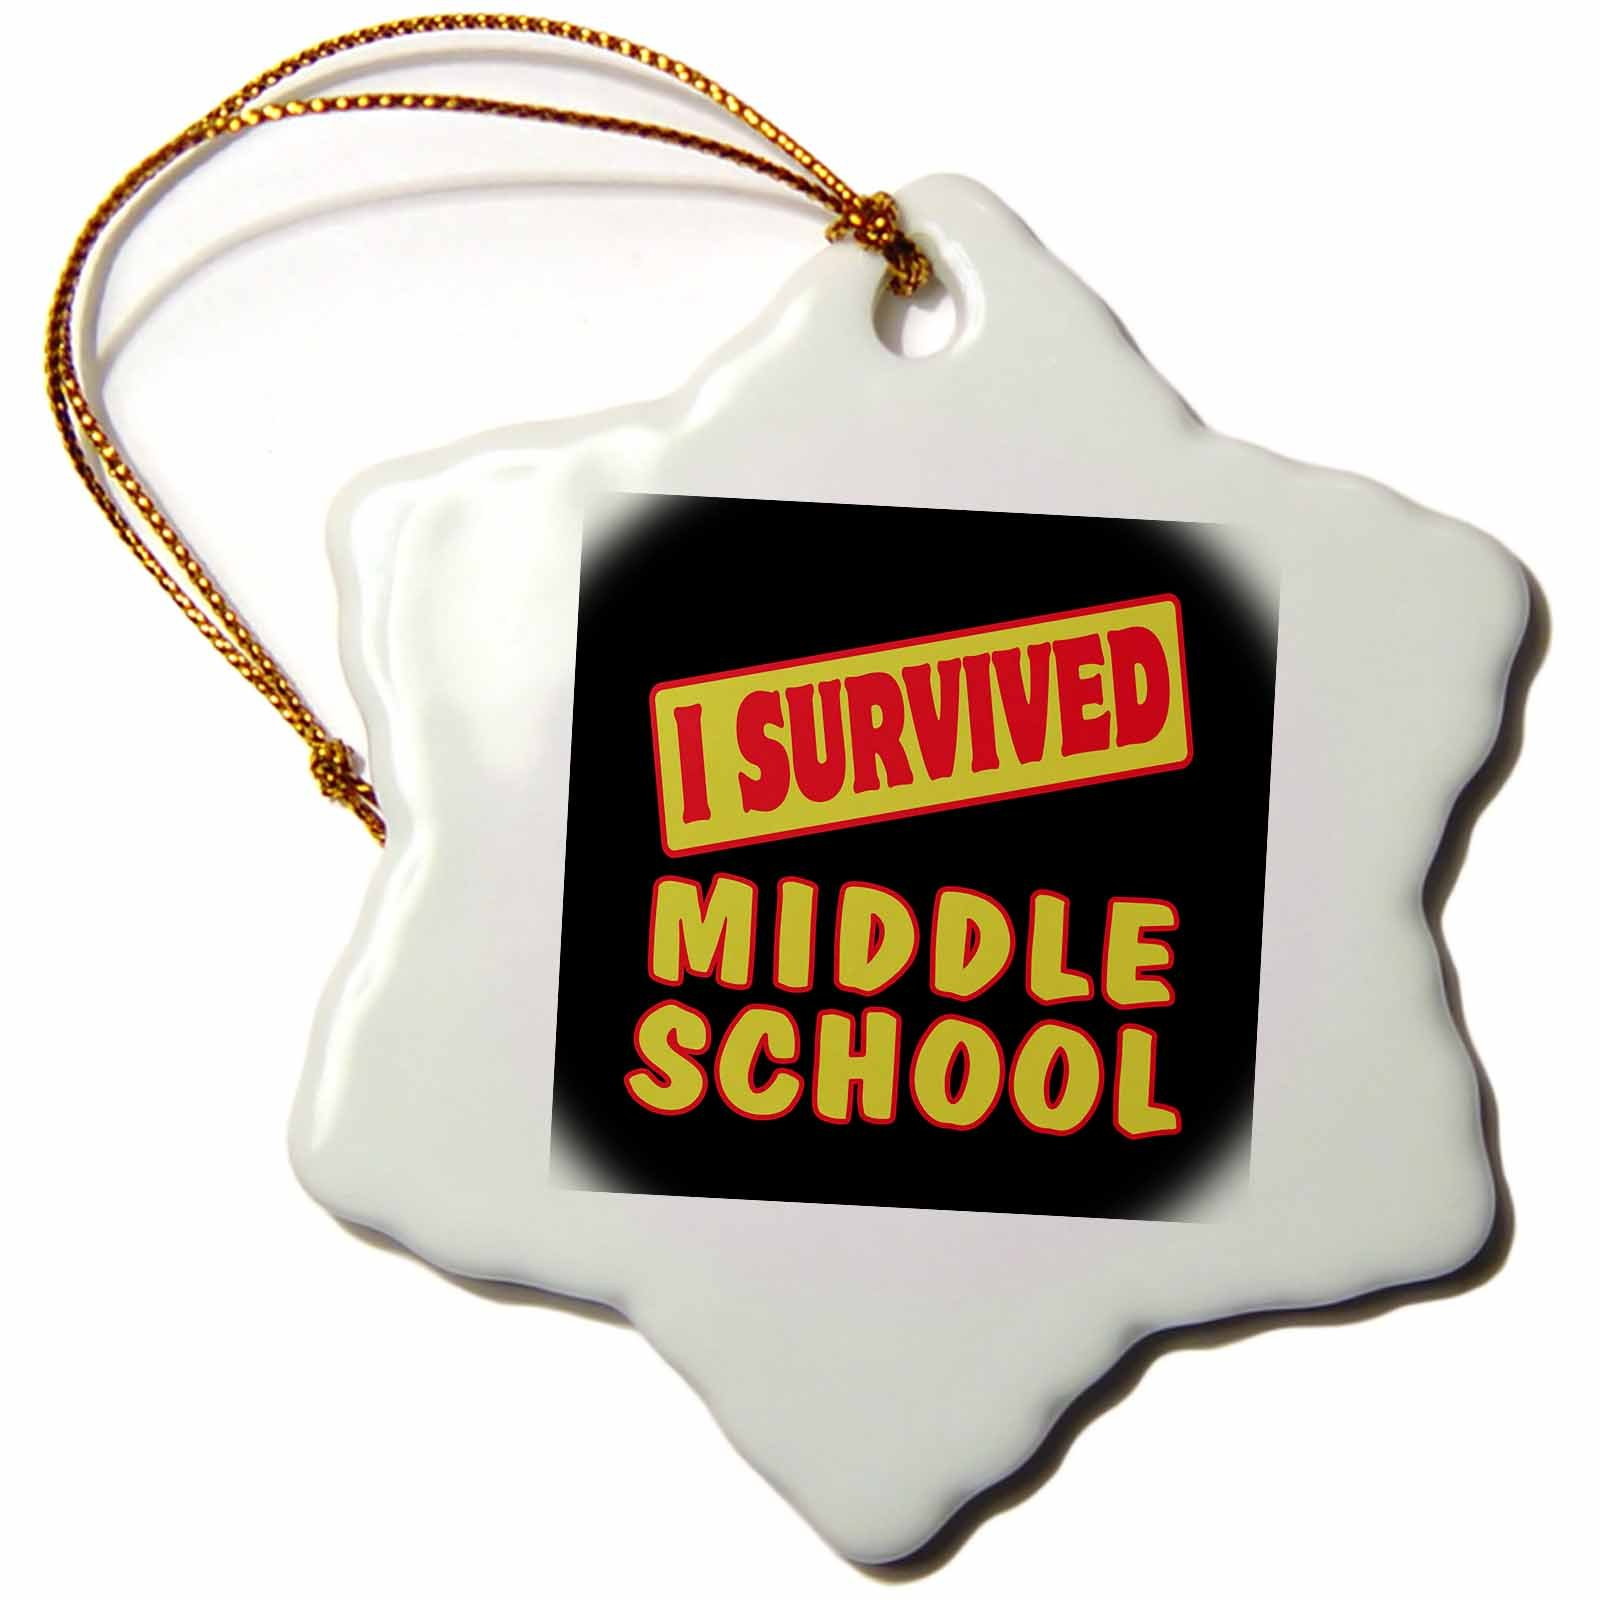 3dRose orn_118085_1 I Survived Middle School Survival Pride and Humor Design Snowflake Porcelain Ornament, 3-Inch